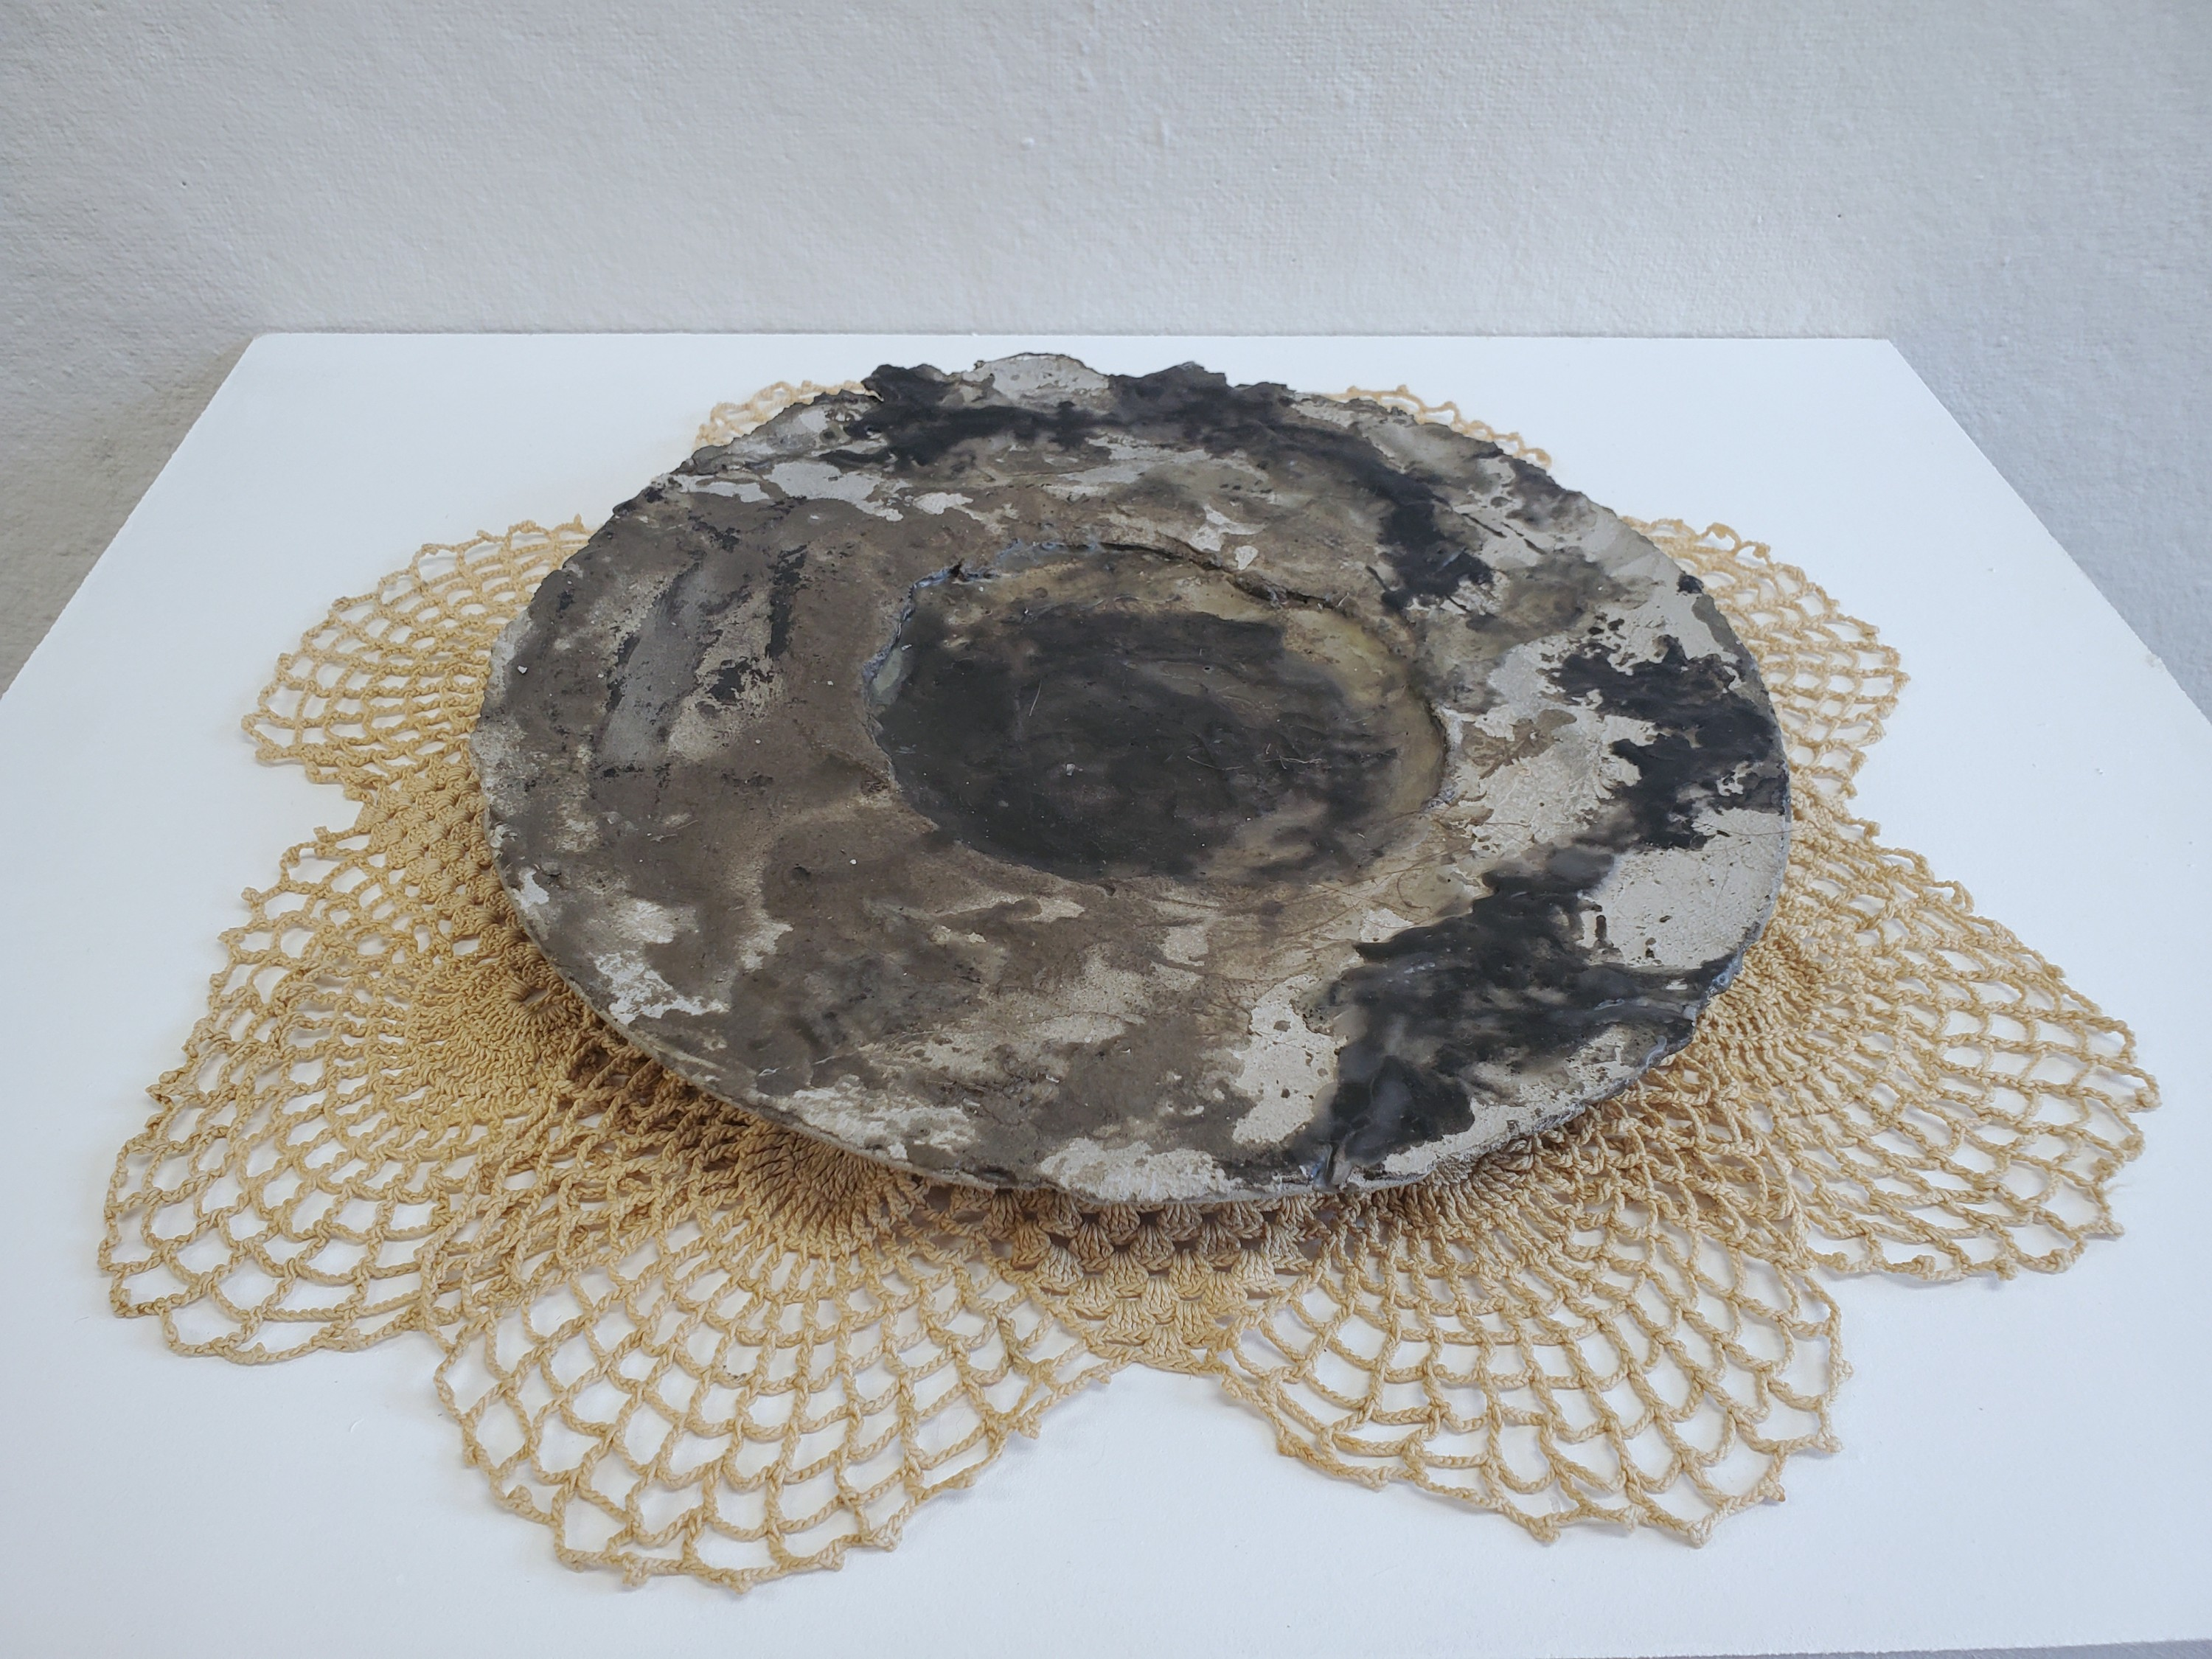 A plate on a placemat. The Plate is cement and wax. The wax is sticking broken pieces of the plate back together. The wax looks dirty and black is several places. The placemat is circular and is made of lace doilies dyed a light reddish brown with rust.